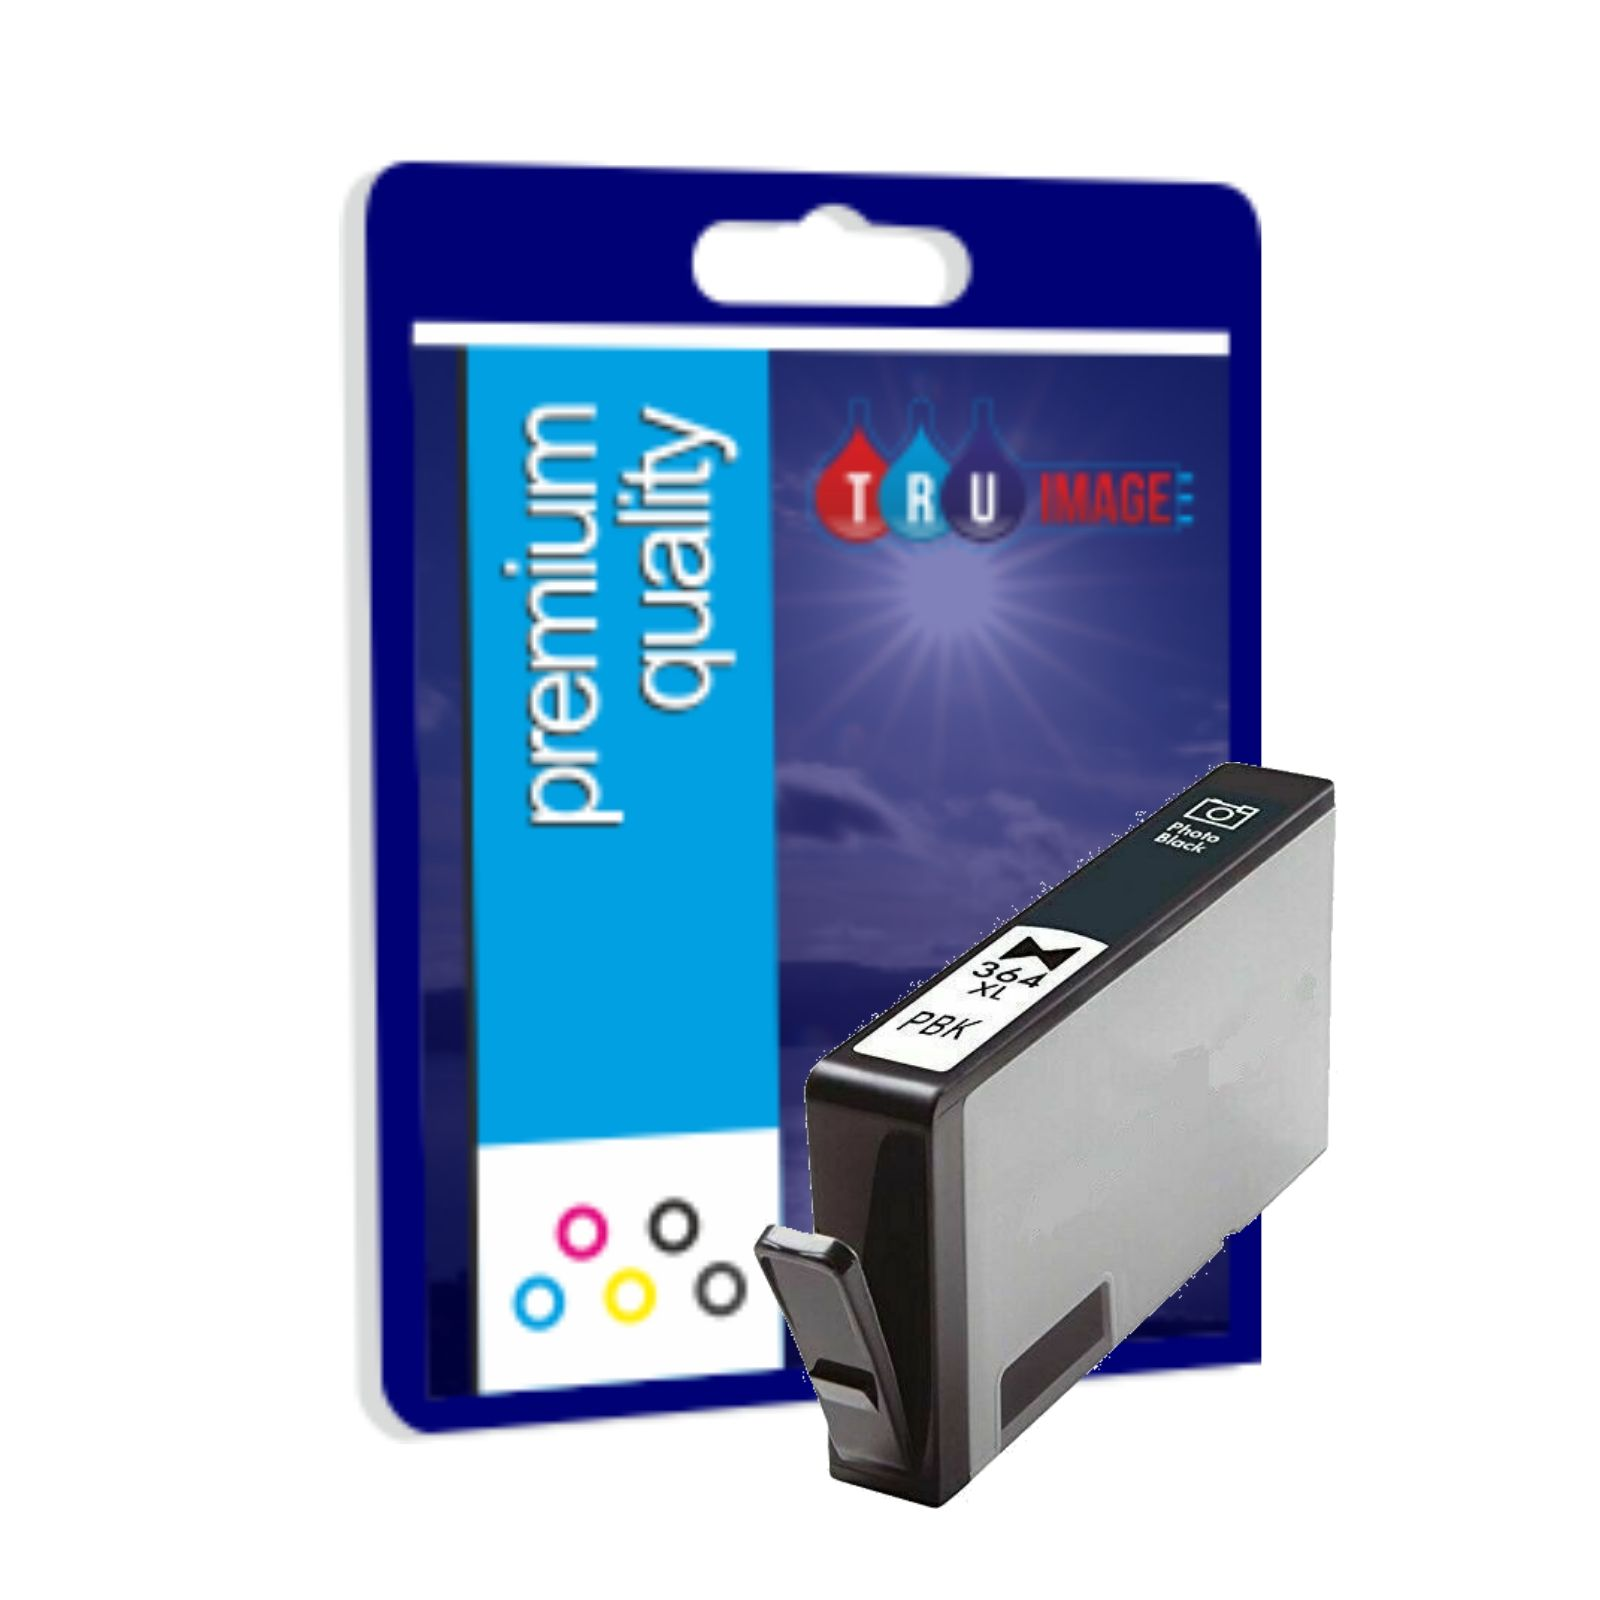 Premium Quality Ink Cartridge for HP 364XL Photo Black